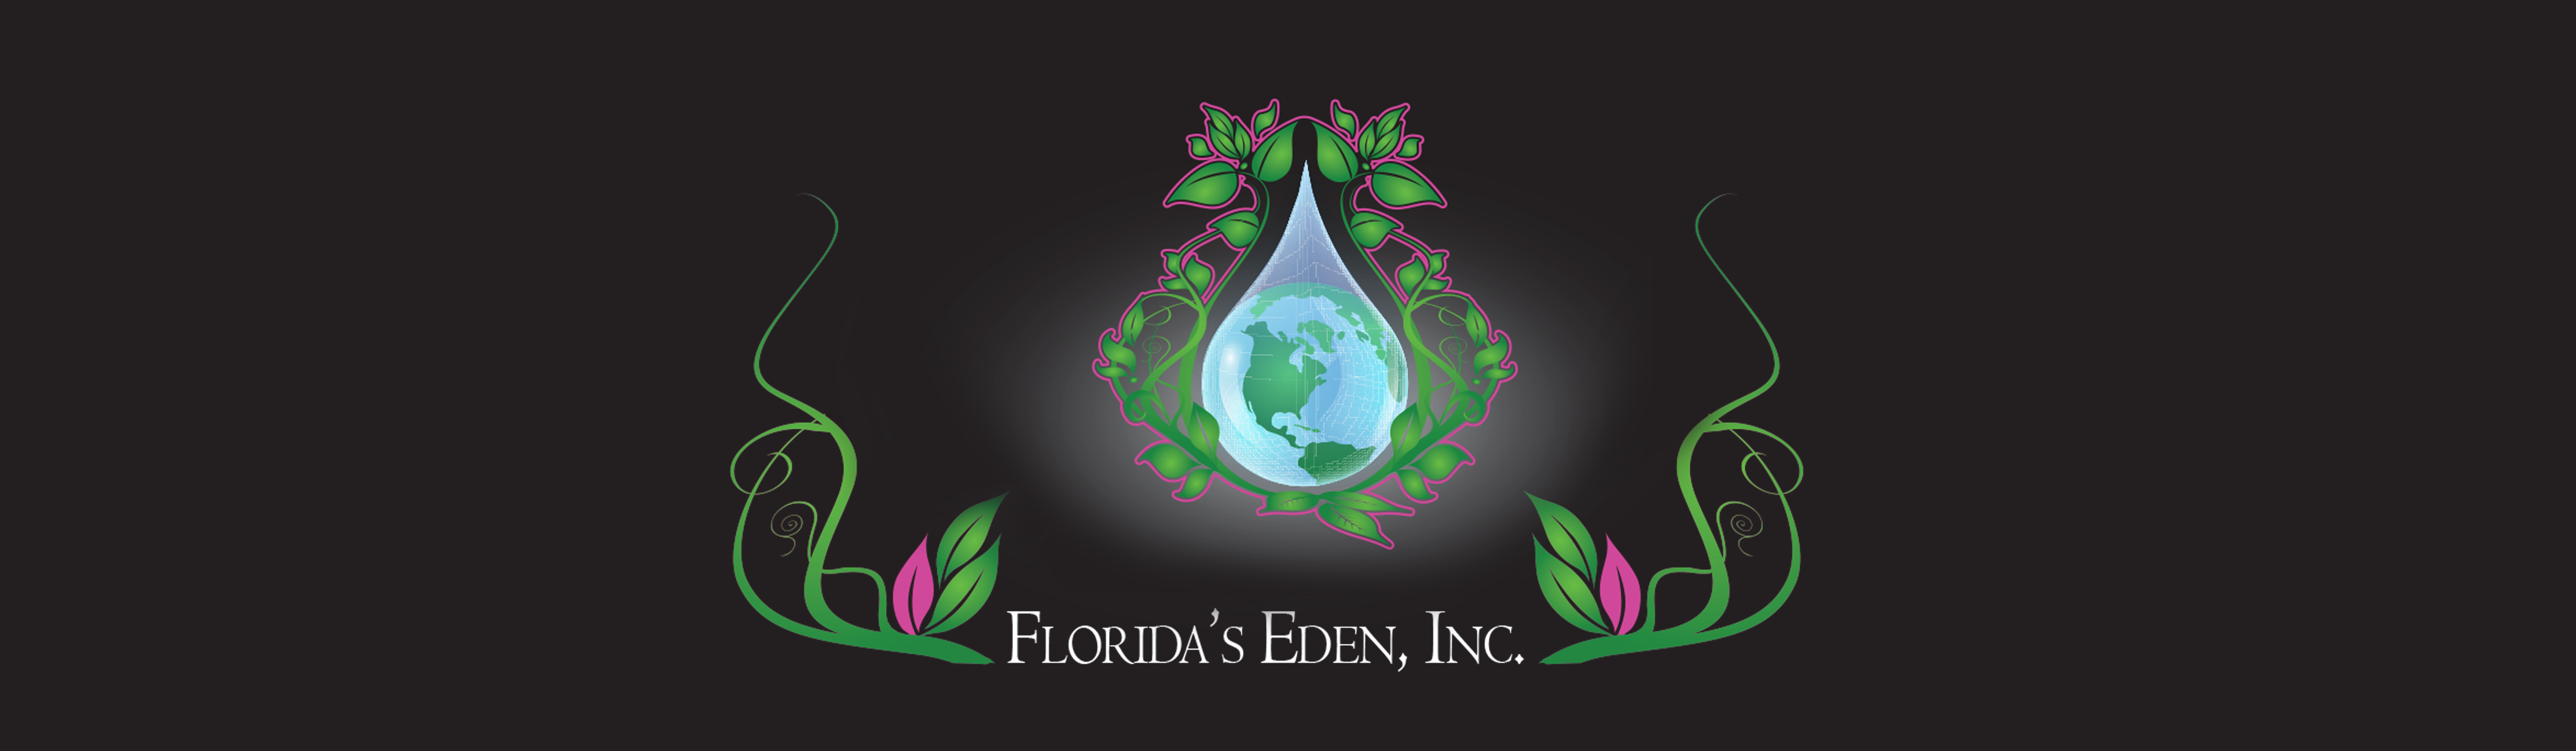 Florida's Eden Inc.